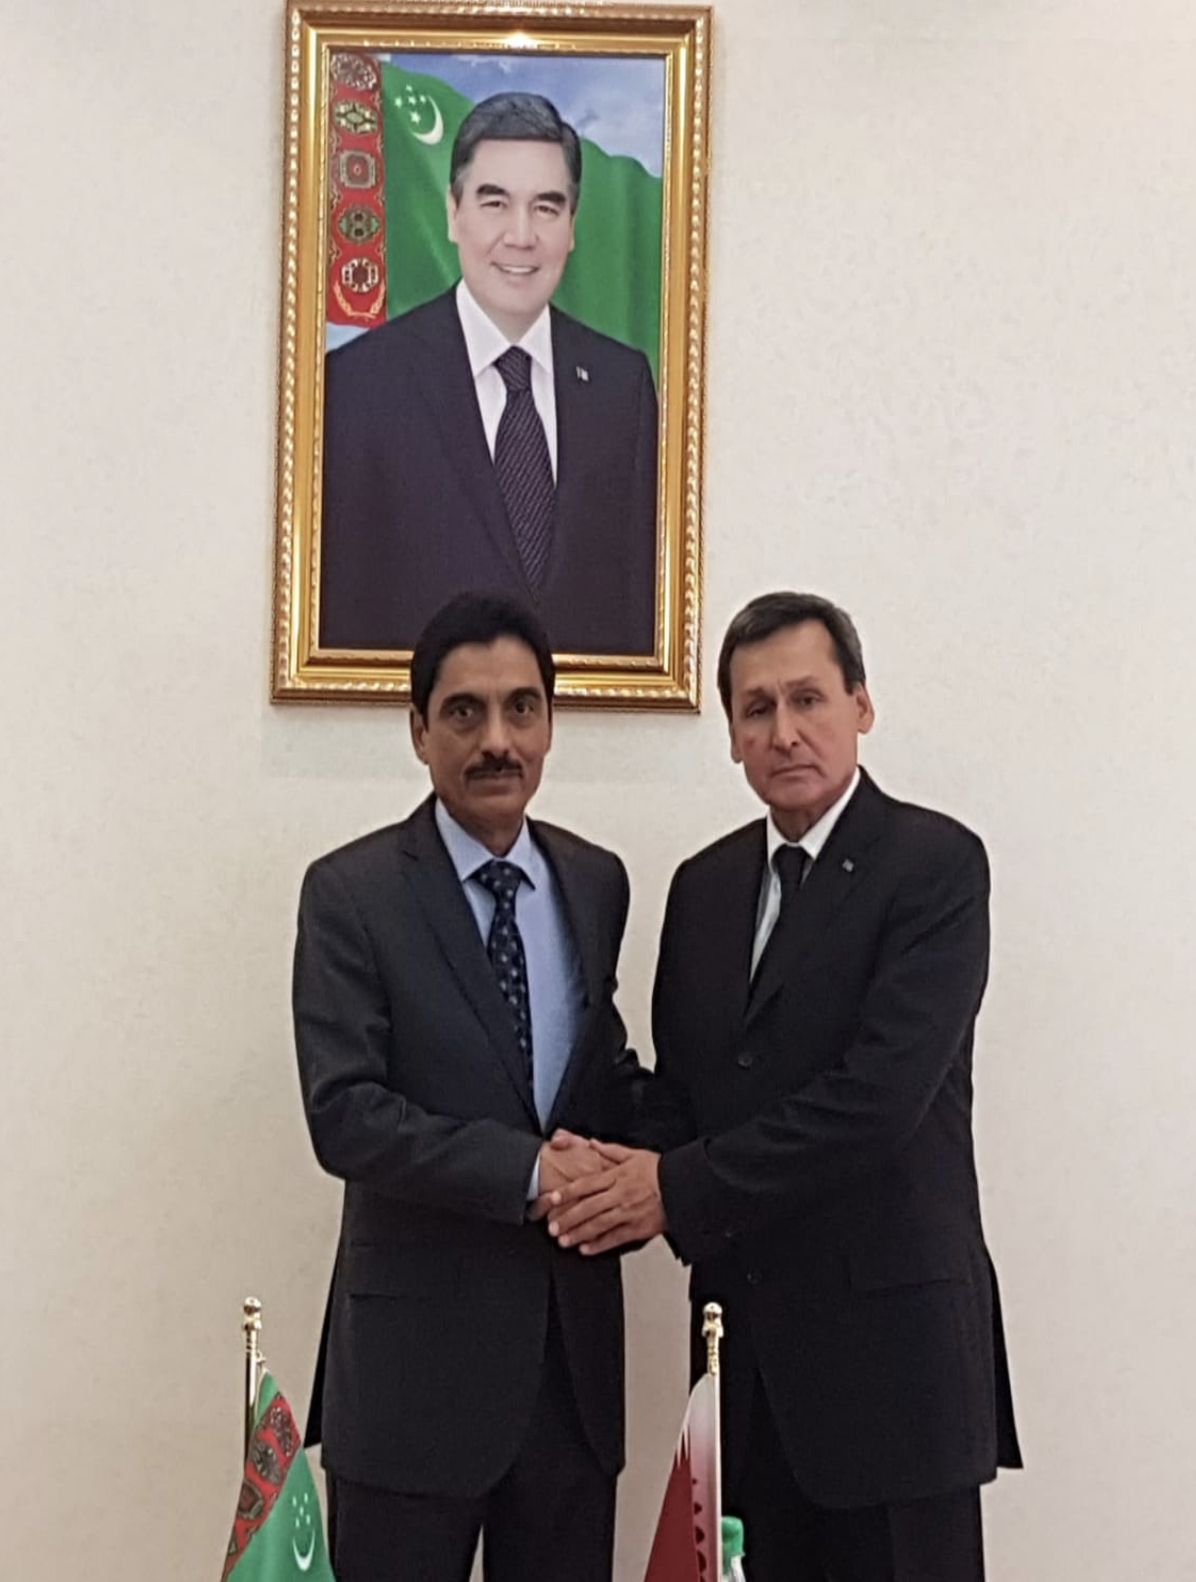 Deputy Prime Minister and Minister of Foreign Affairs of Turkmenistan Meets Qatari Ambassador